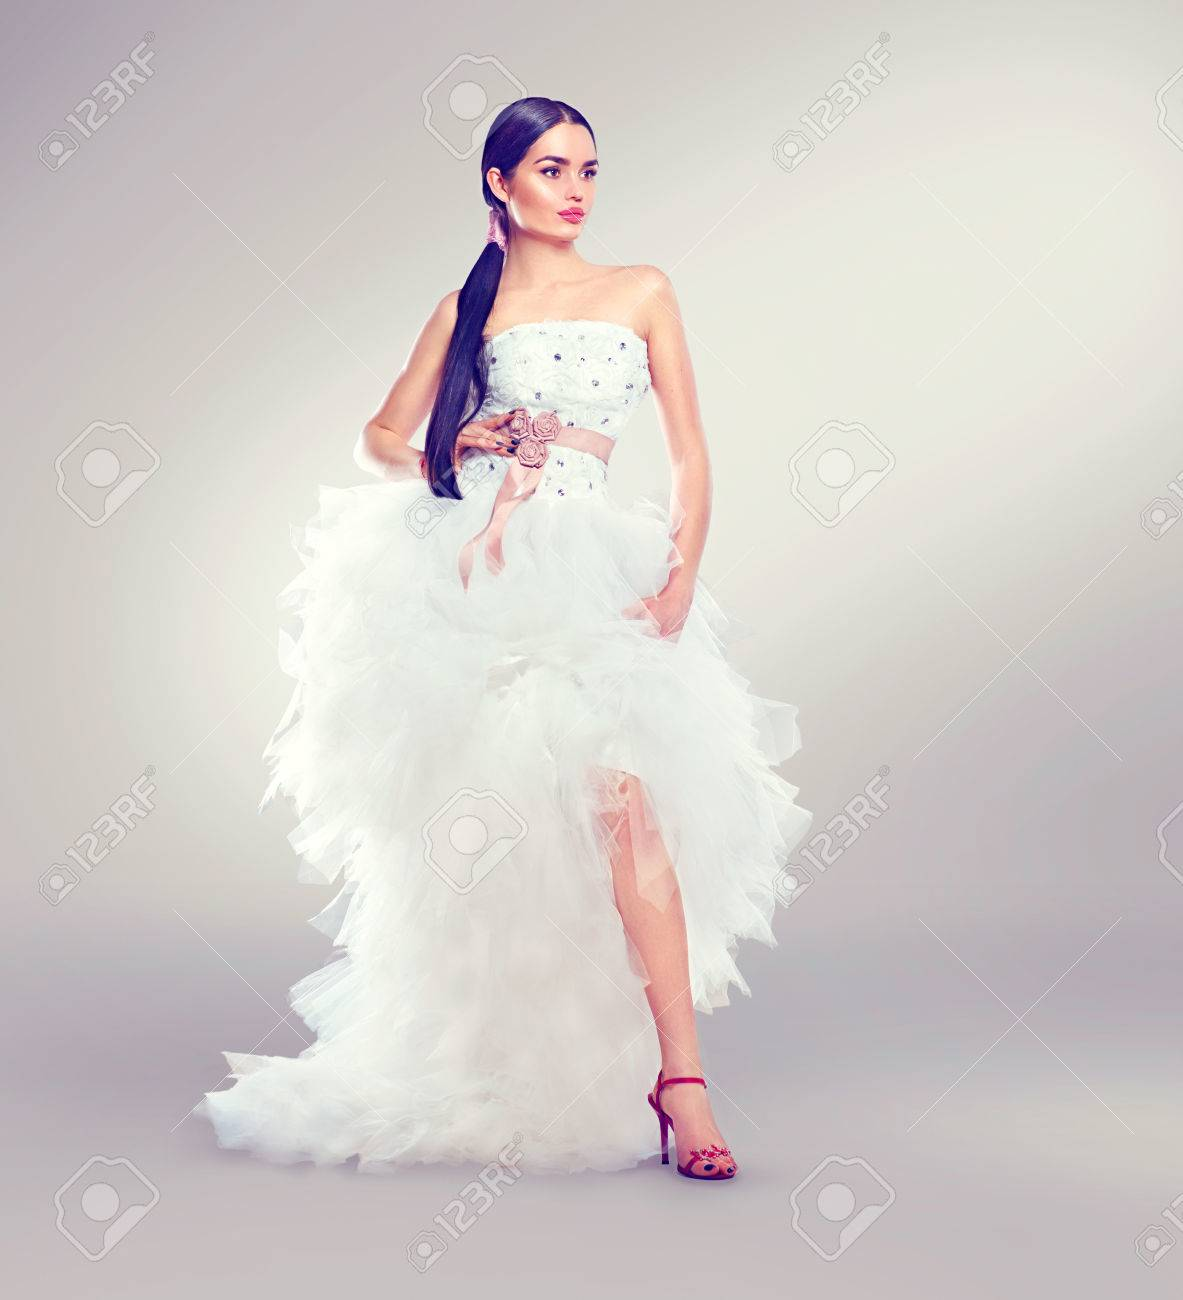 Beauty Fashion Young Model Bride In Wedding Dress With Long Train ...